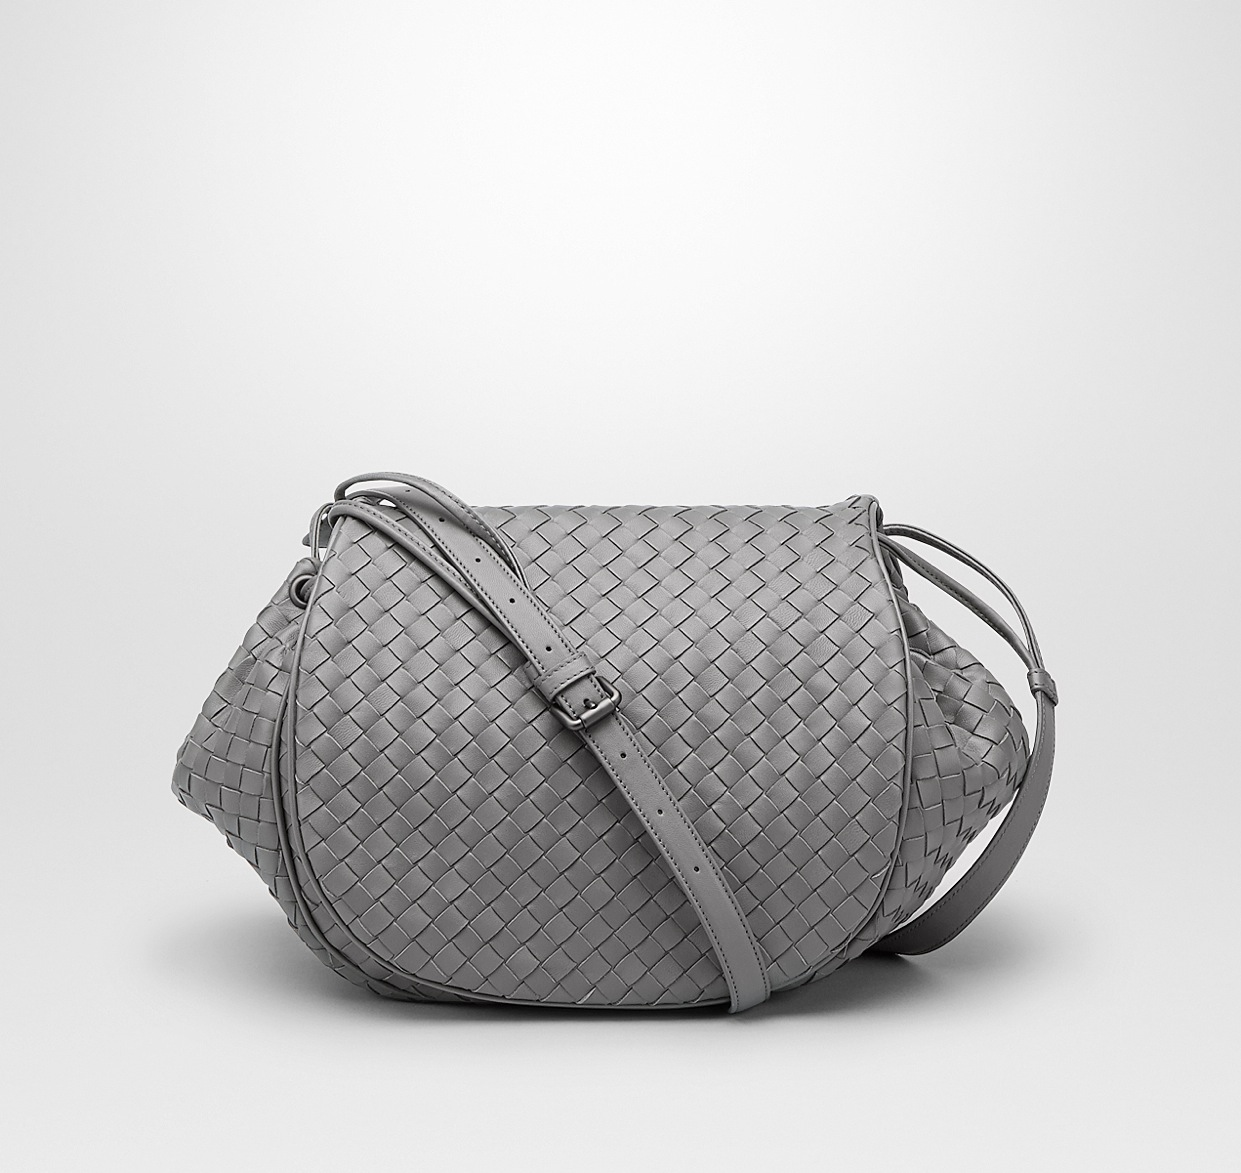 8e73df2f3c Bottega Veneta New Light Grey Intrecciato Nappa Flap Messenger Bag - Cruise  2015